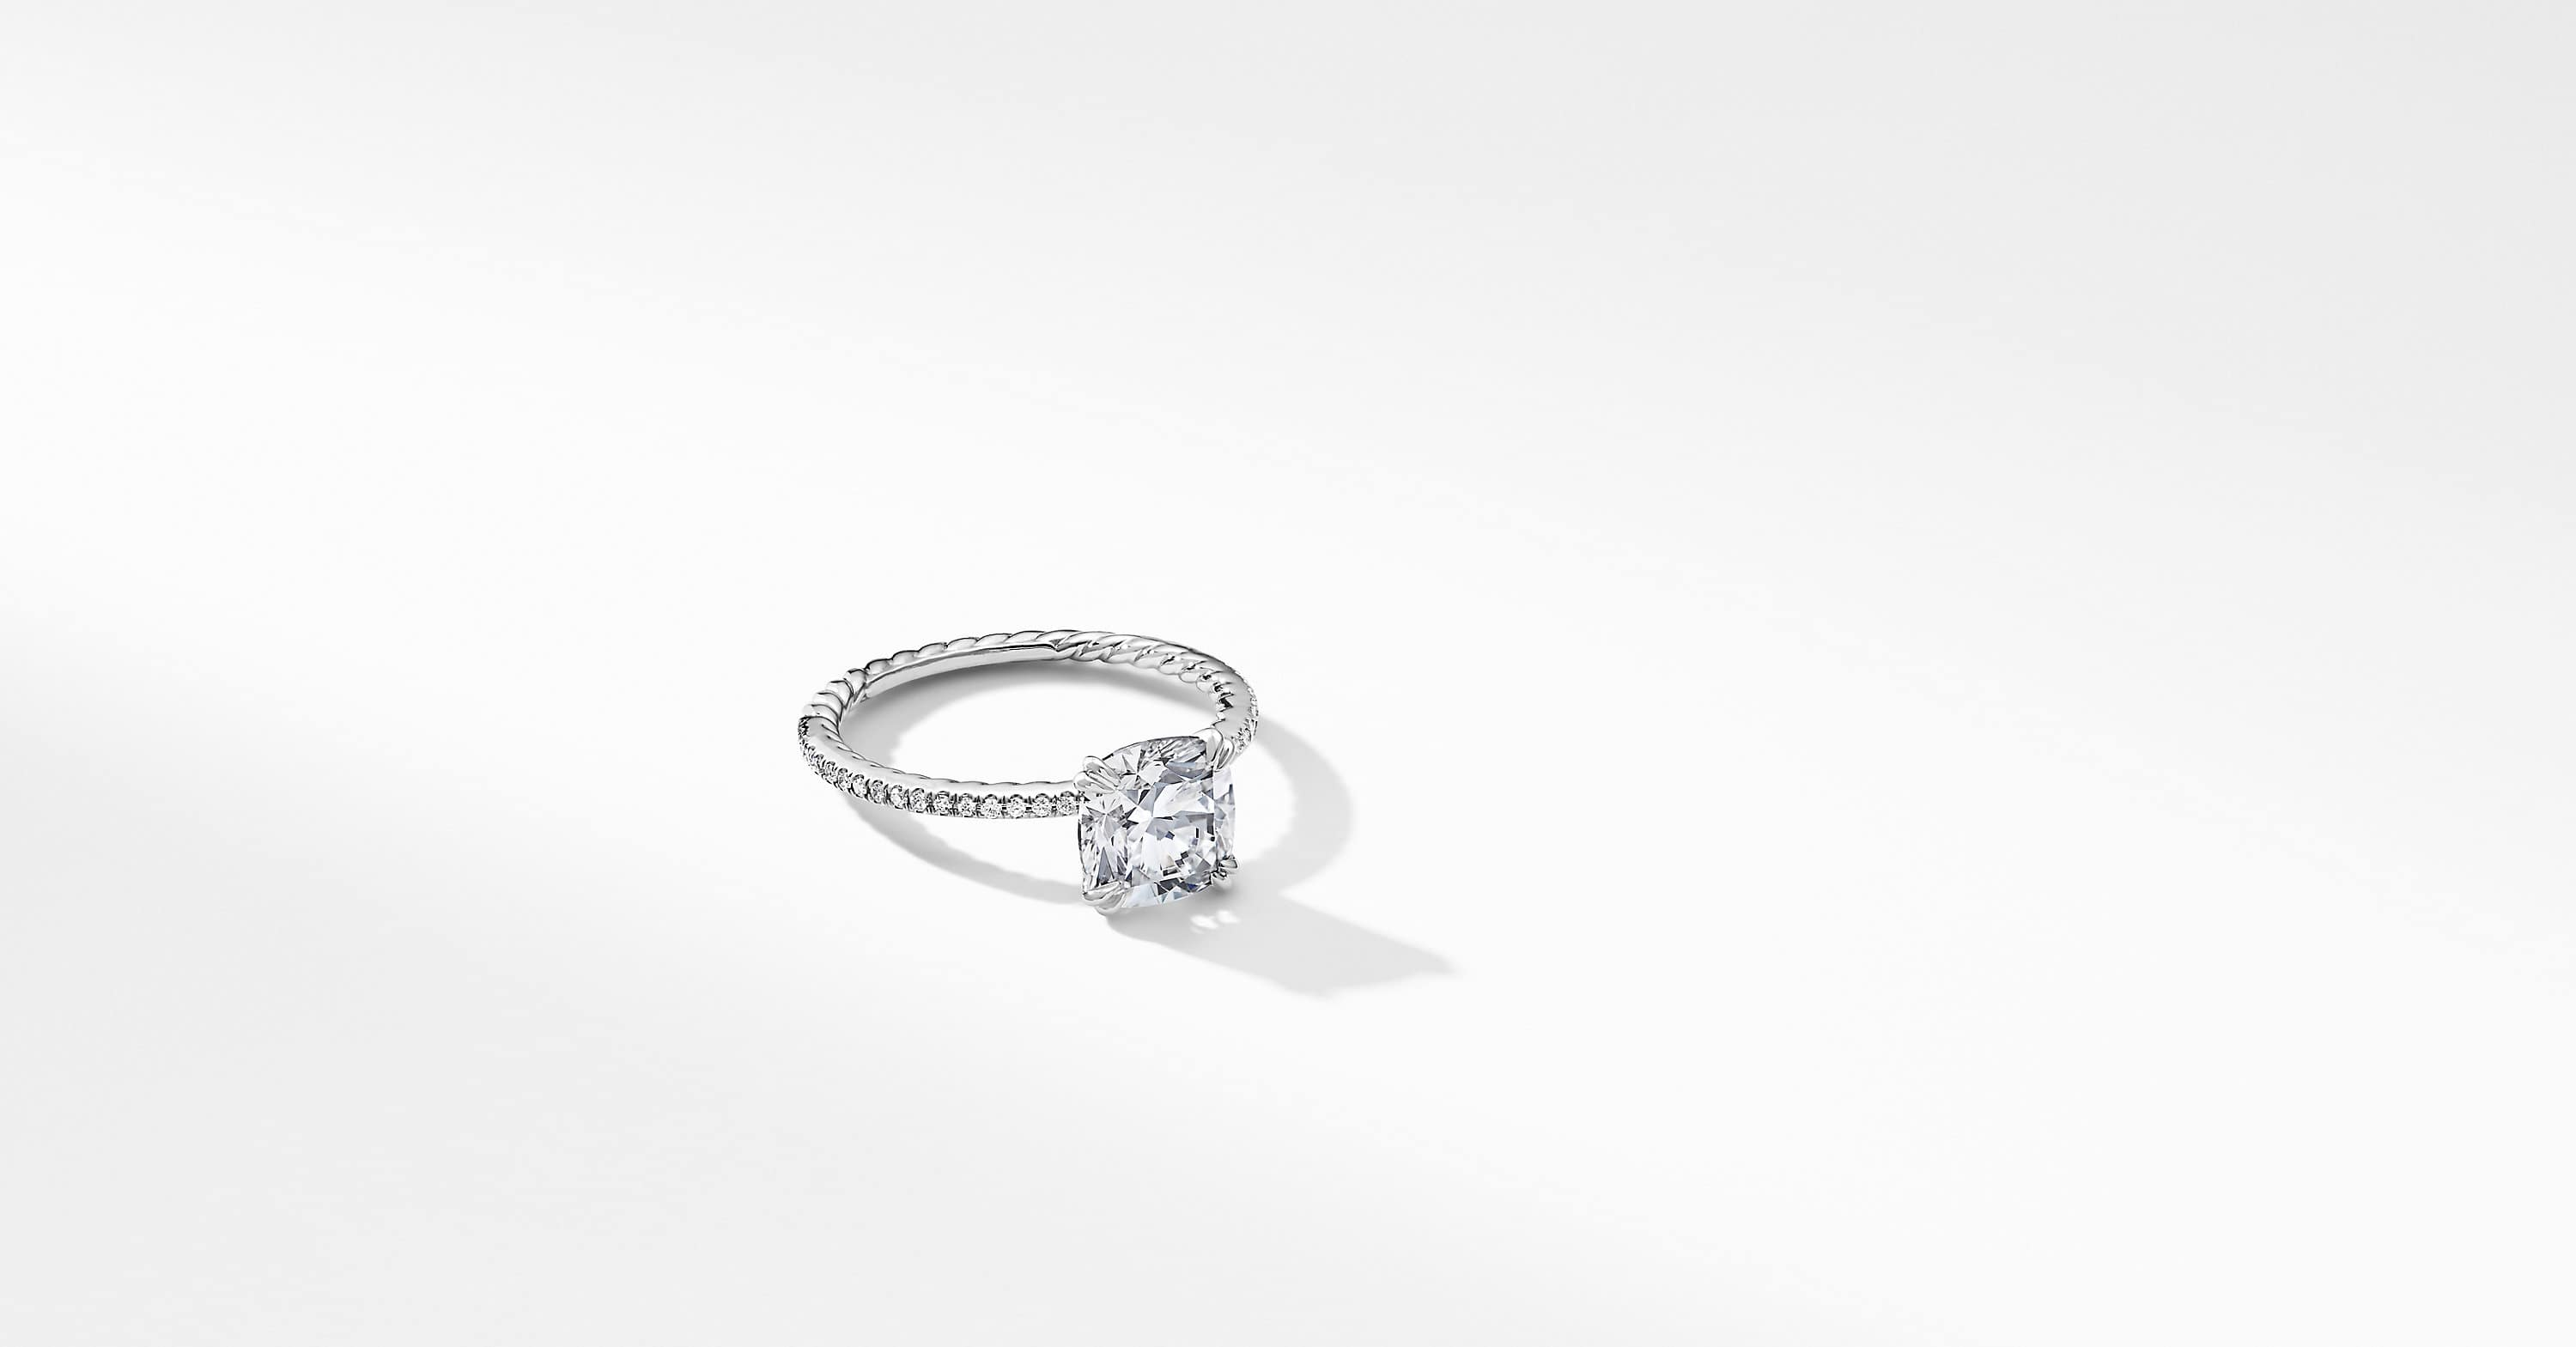 DY Eden Micro Pavé Engagement Ring in Platinum, Cushion